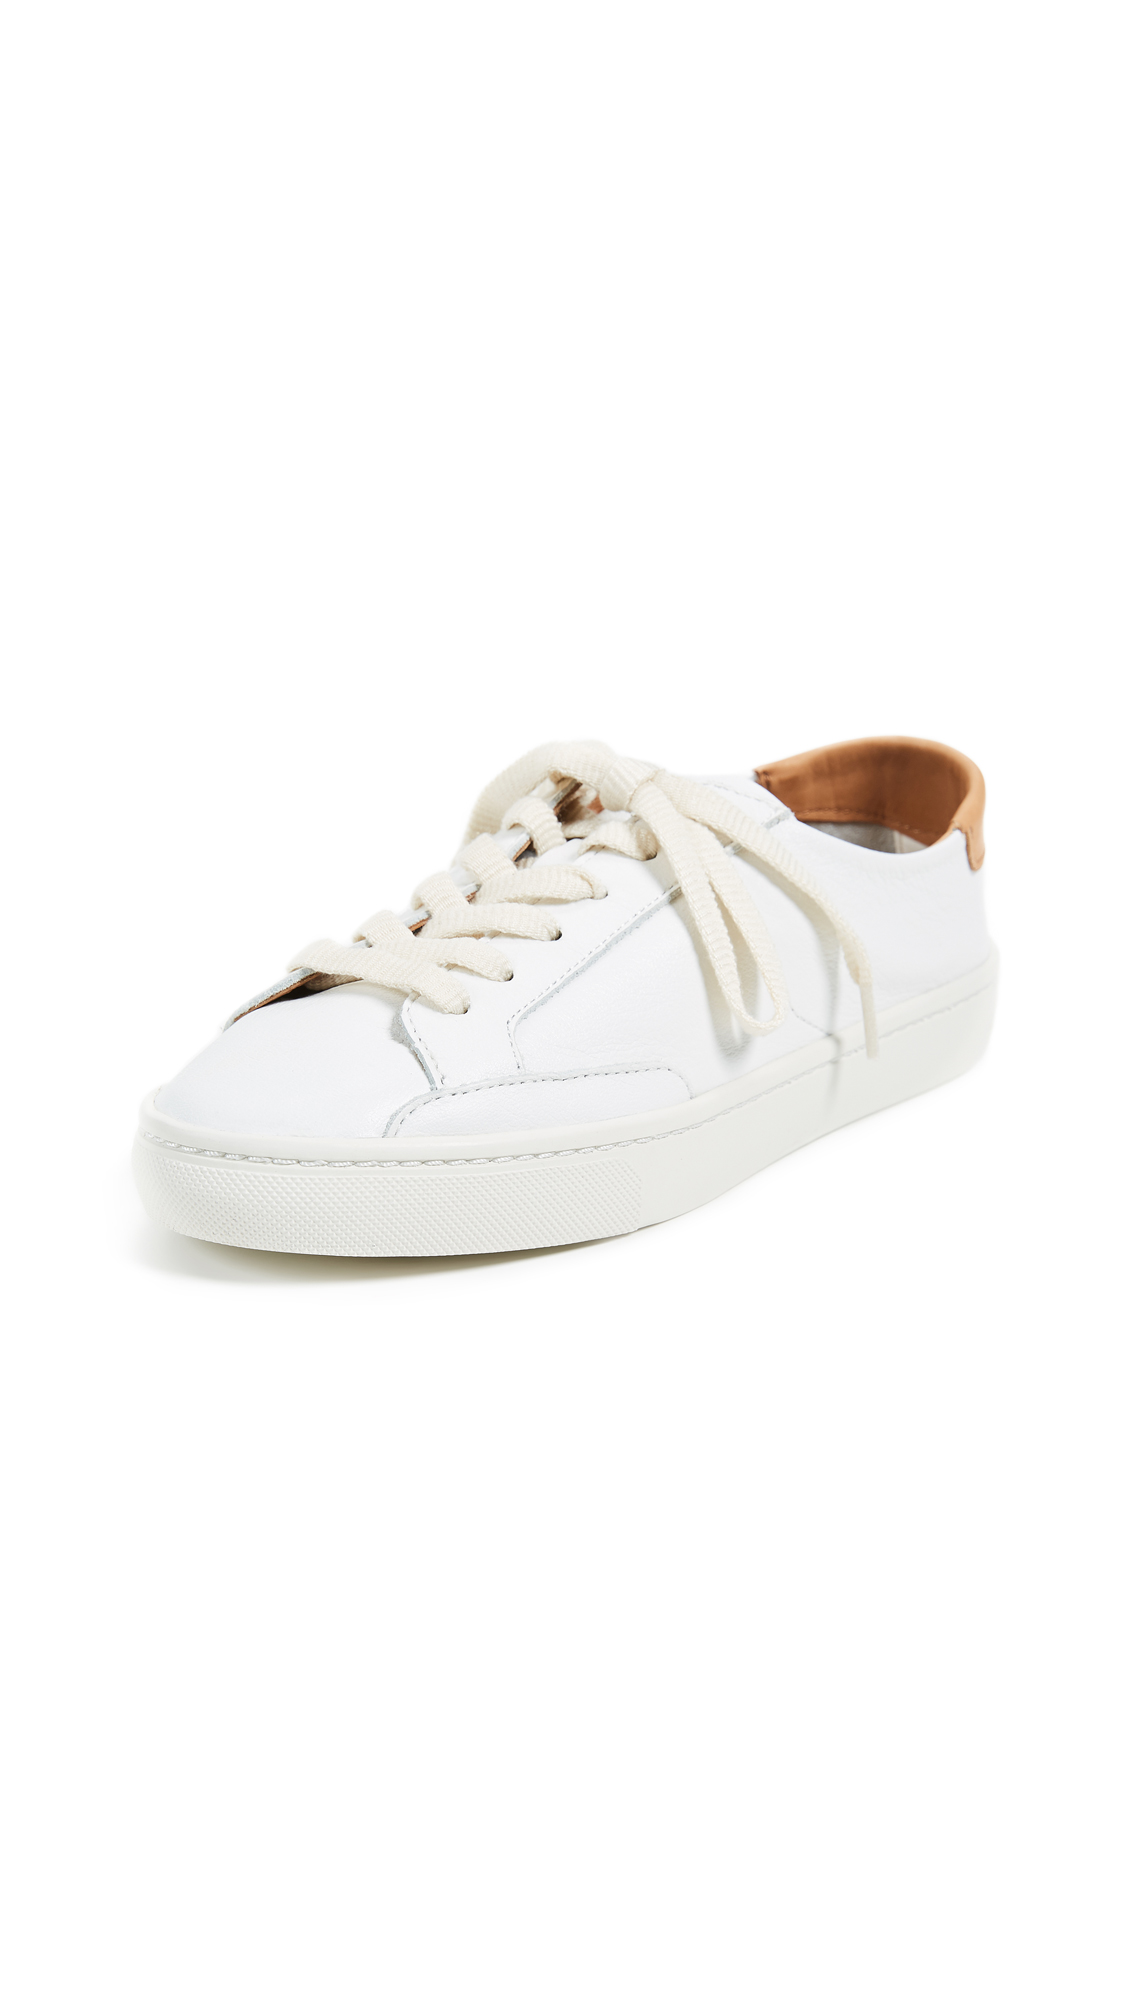 Buy Soludos Ibiza Classic Lace Up Sneakers online, shop Soludos